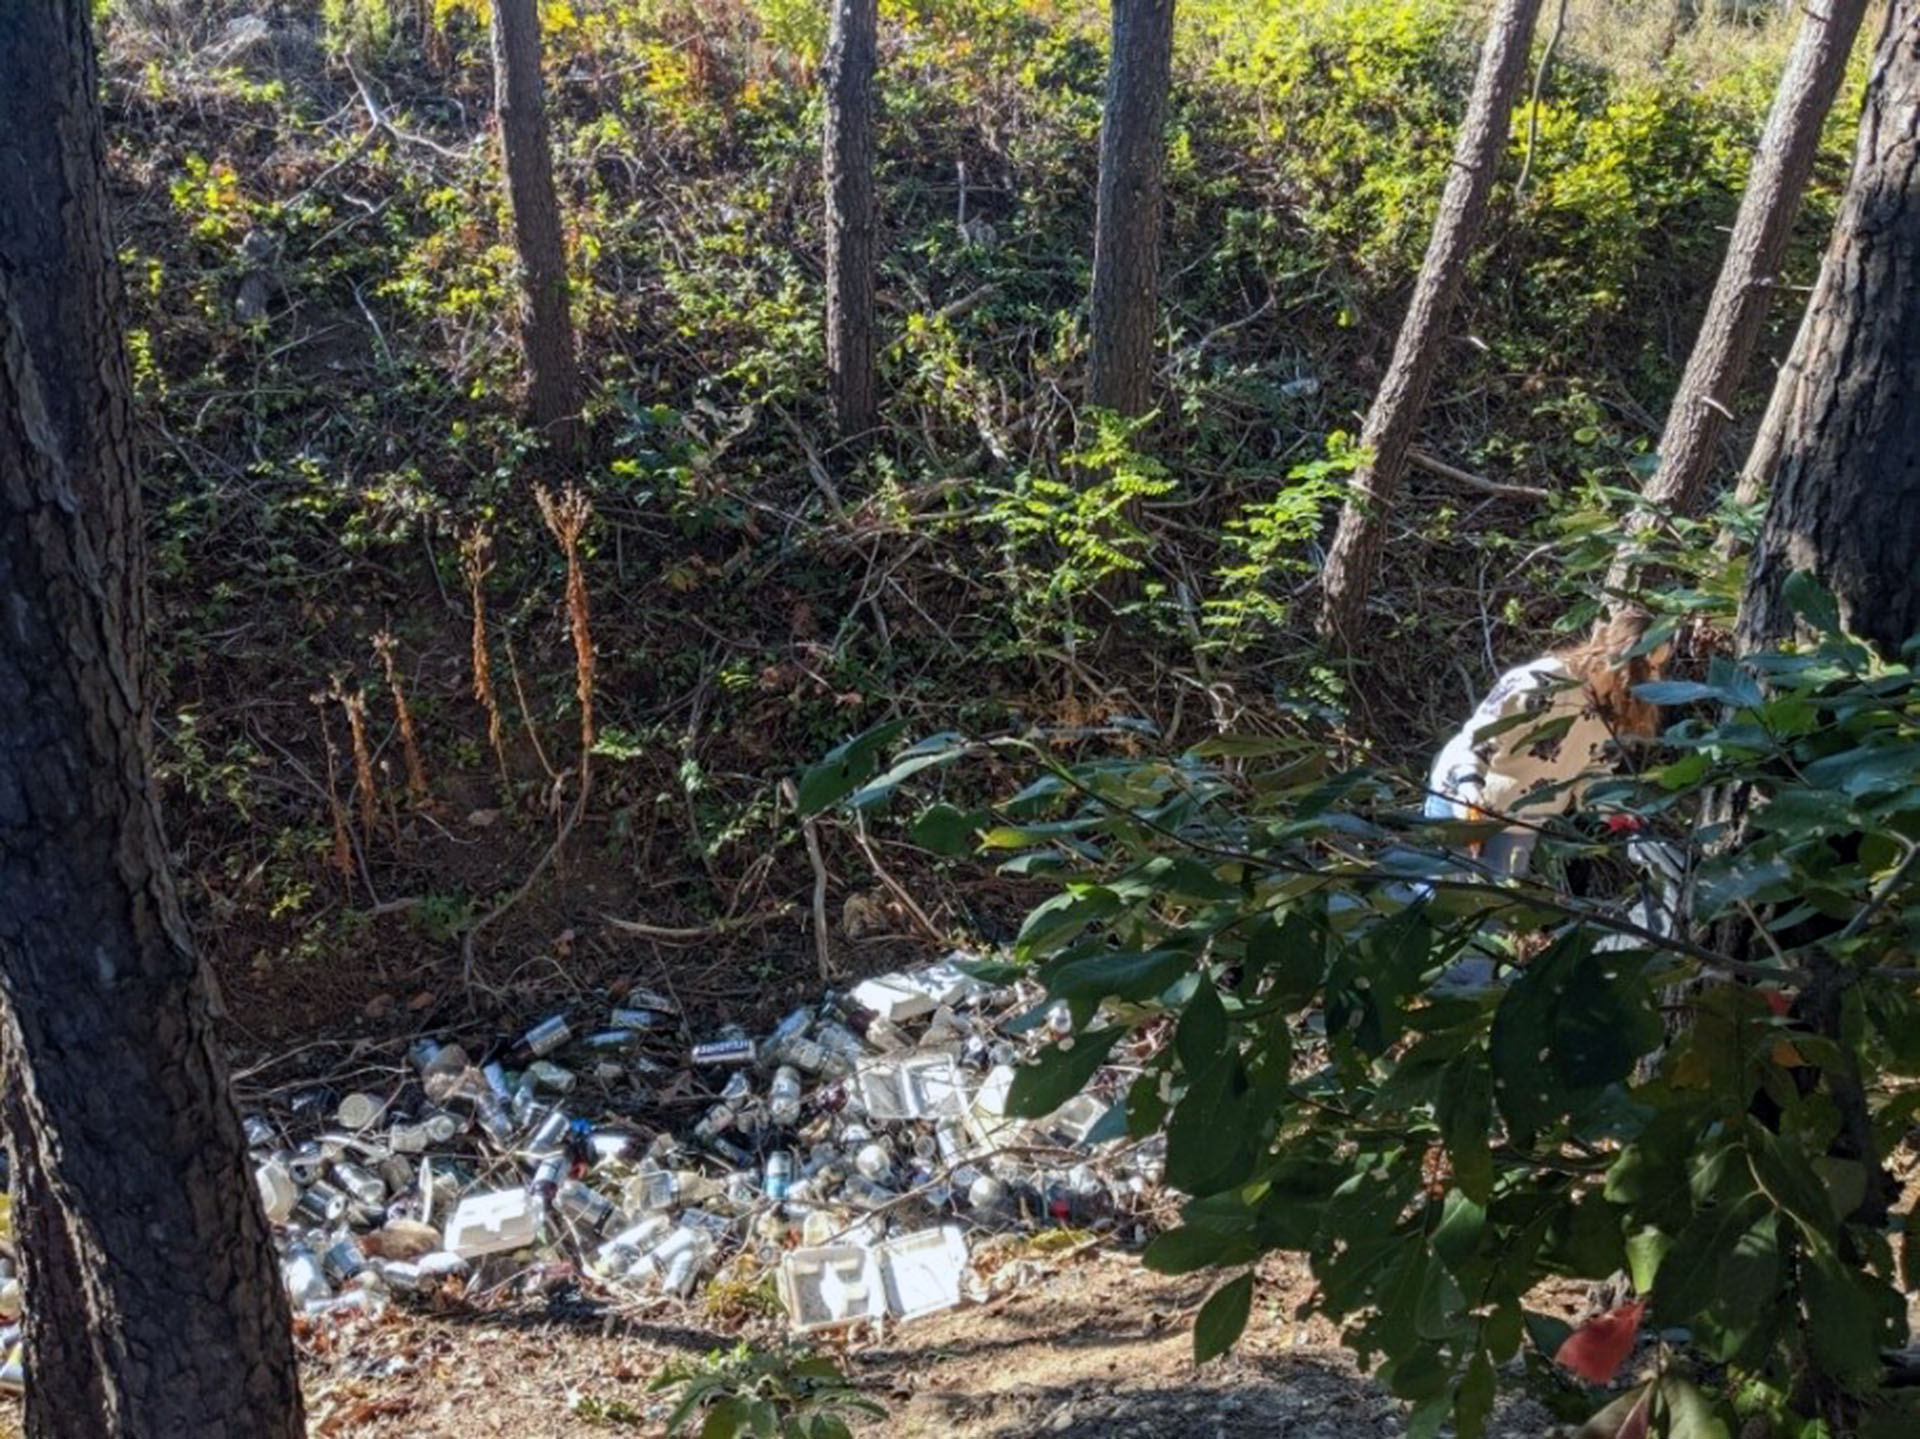 Litter cleanup to be held in Occoquan, December 12